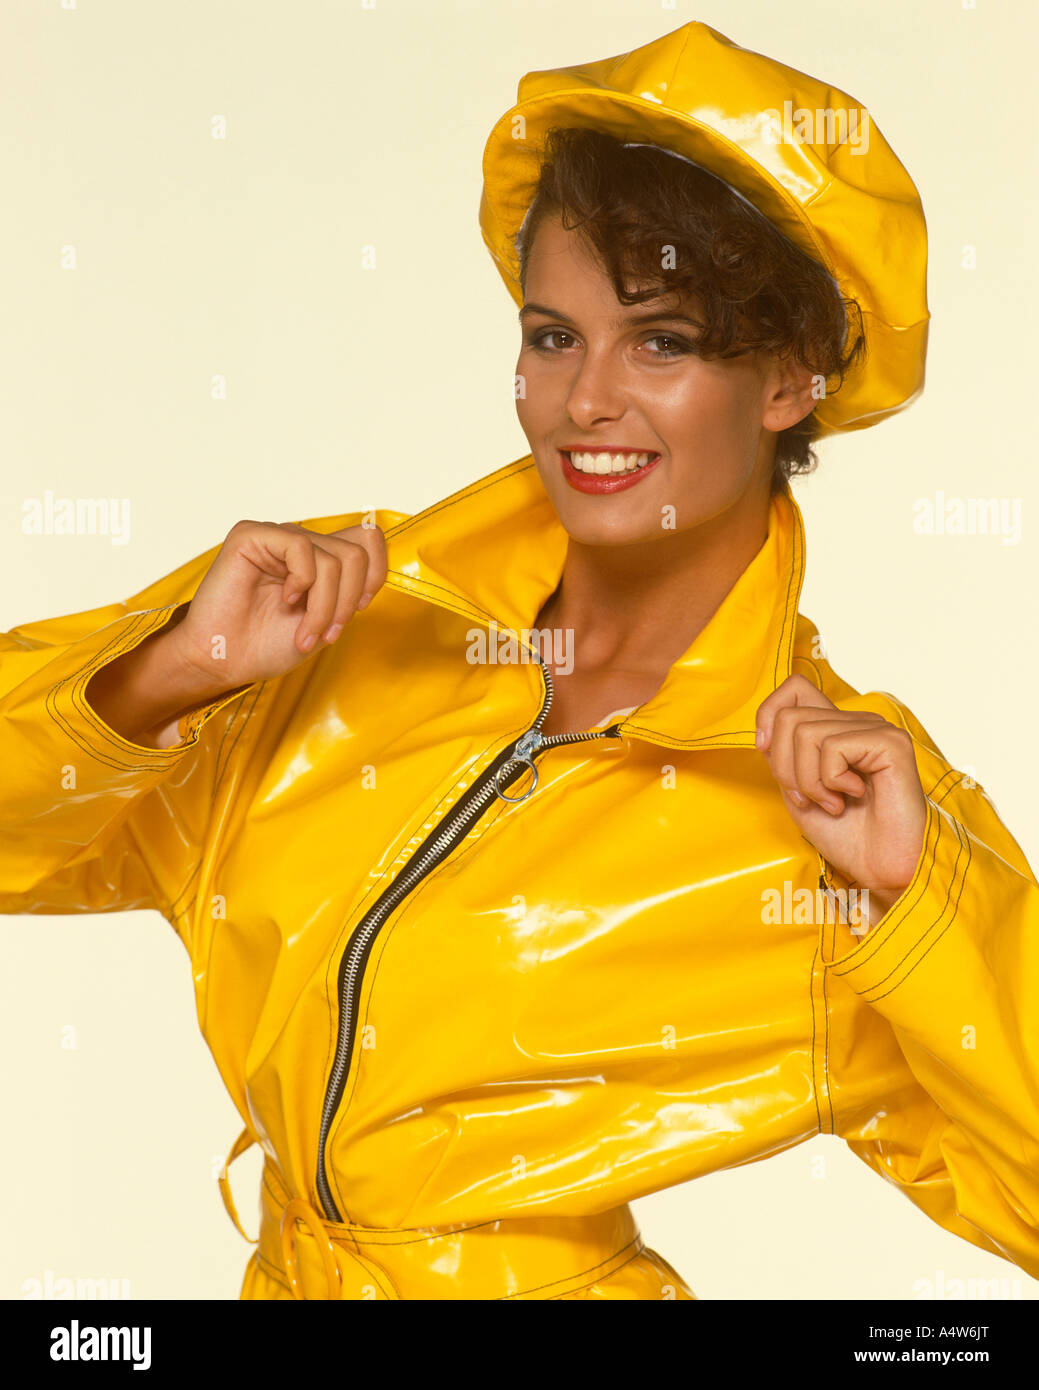 CLAIRE LOUISE YELLOW MAC AND HAT - Stock Image